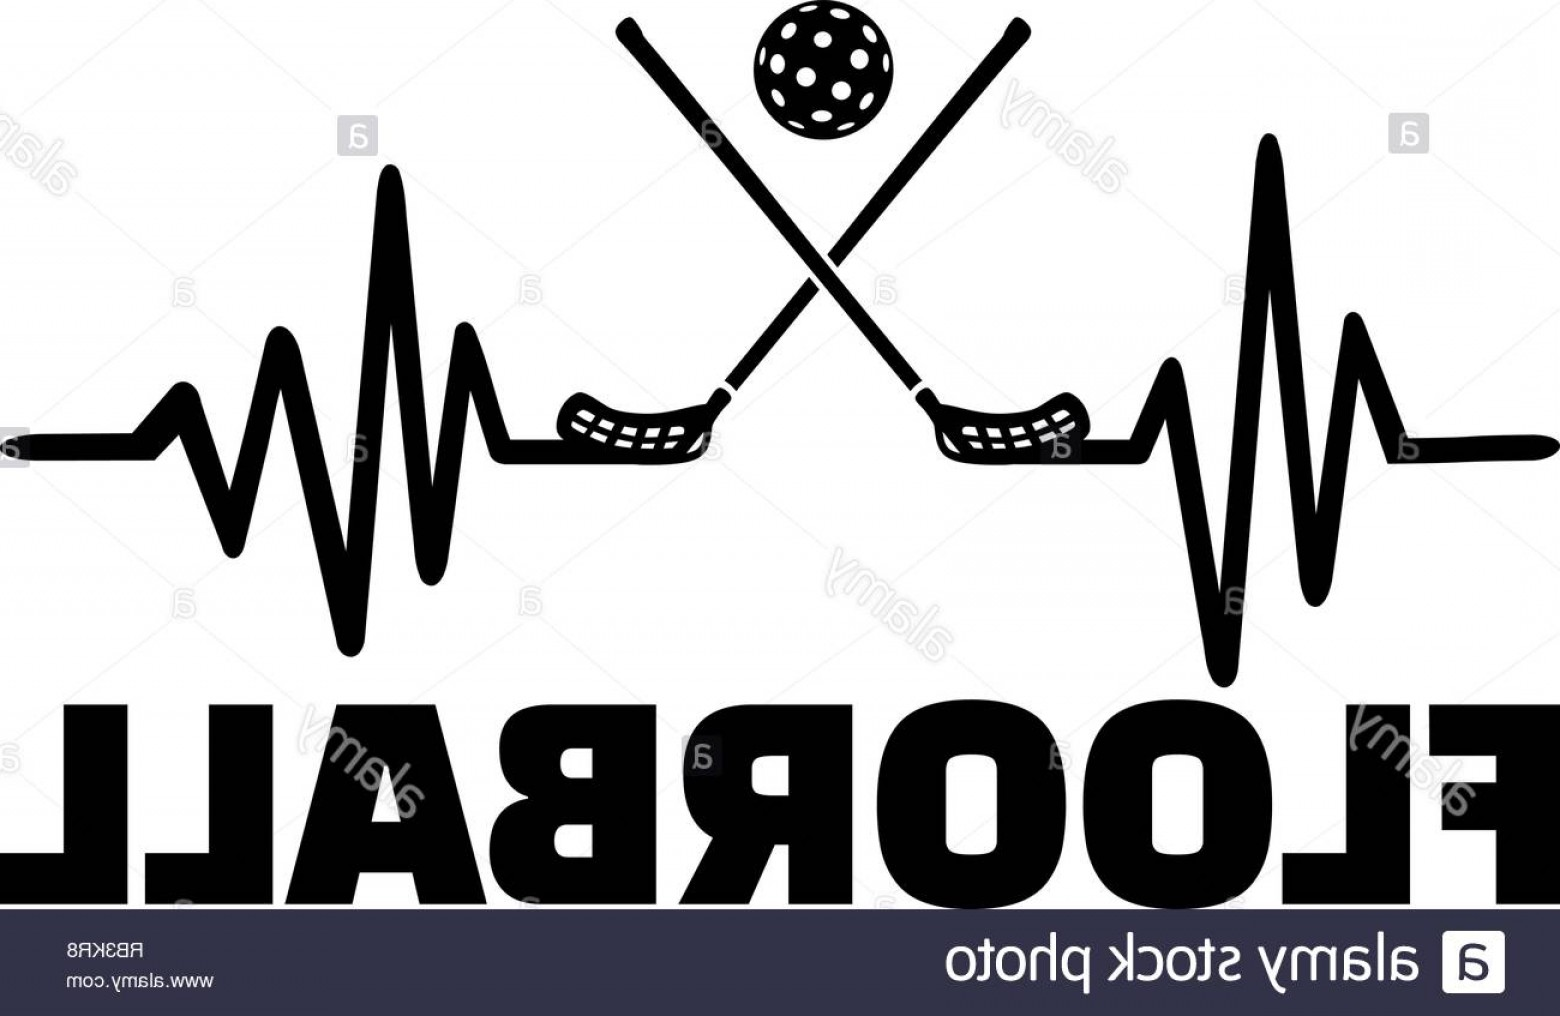 Soccer Ball Heart Beat Vector: Heartbeat Pulse Line With Two Crossed Floorball Sticks A Ball And Word Image